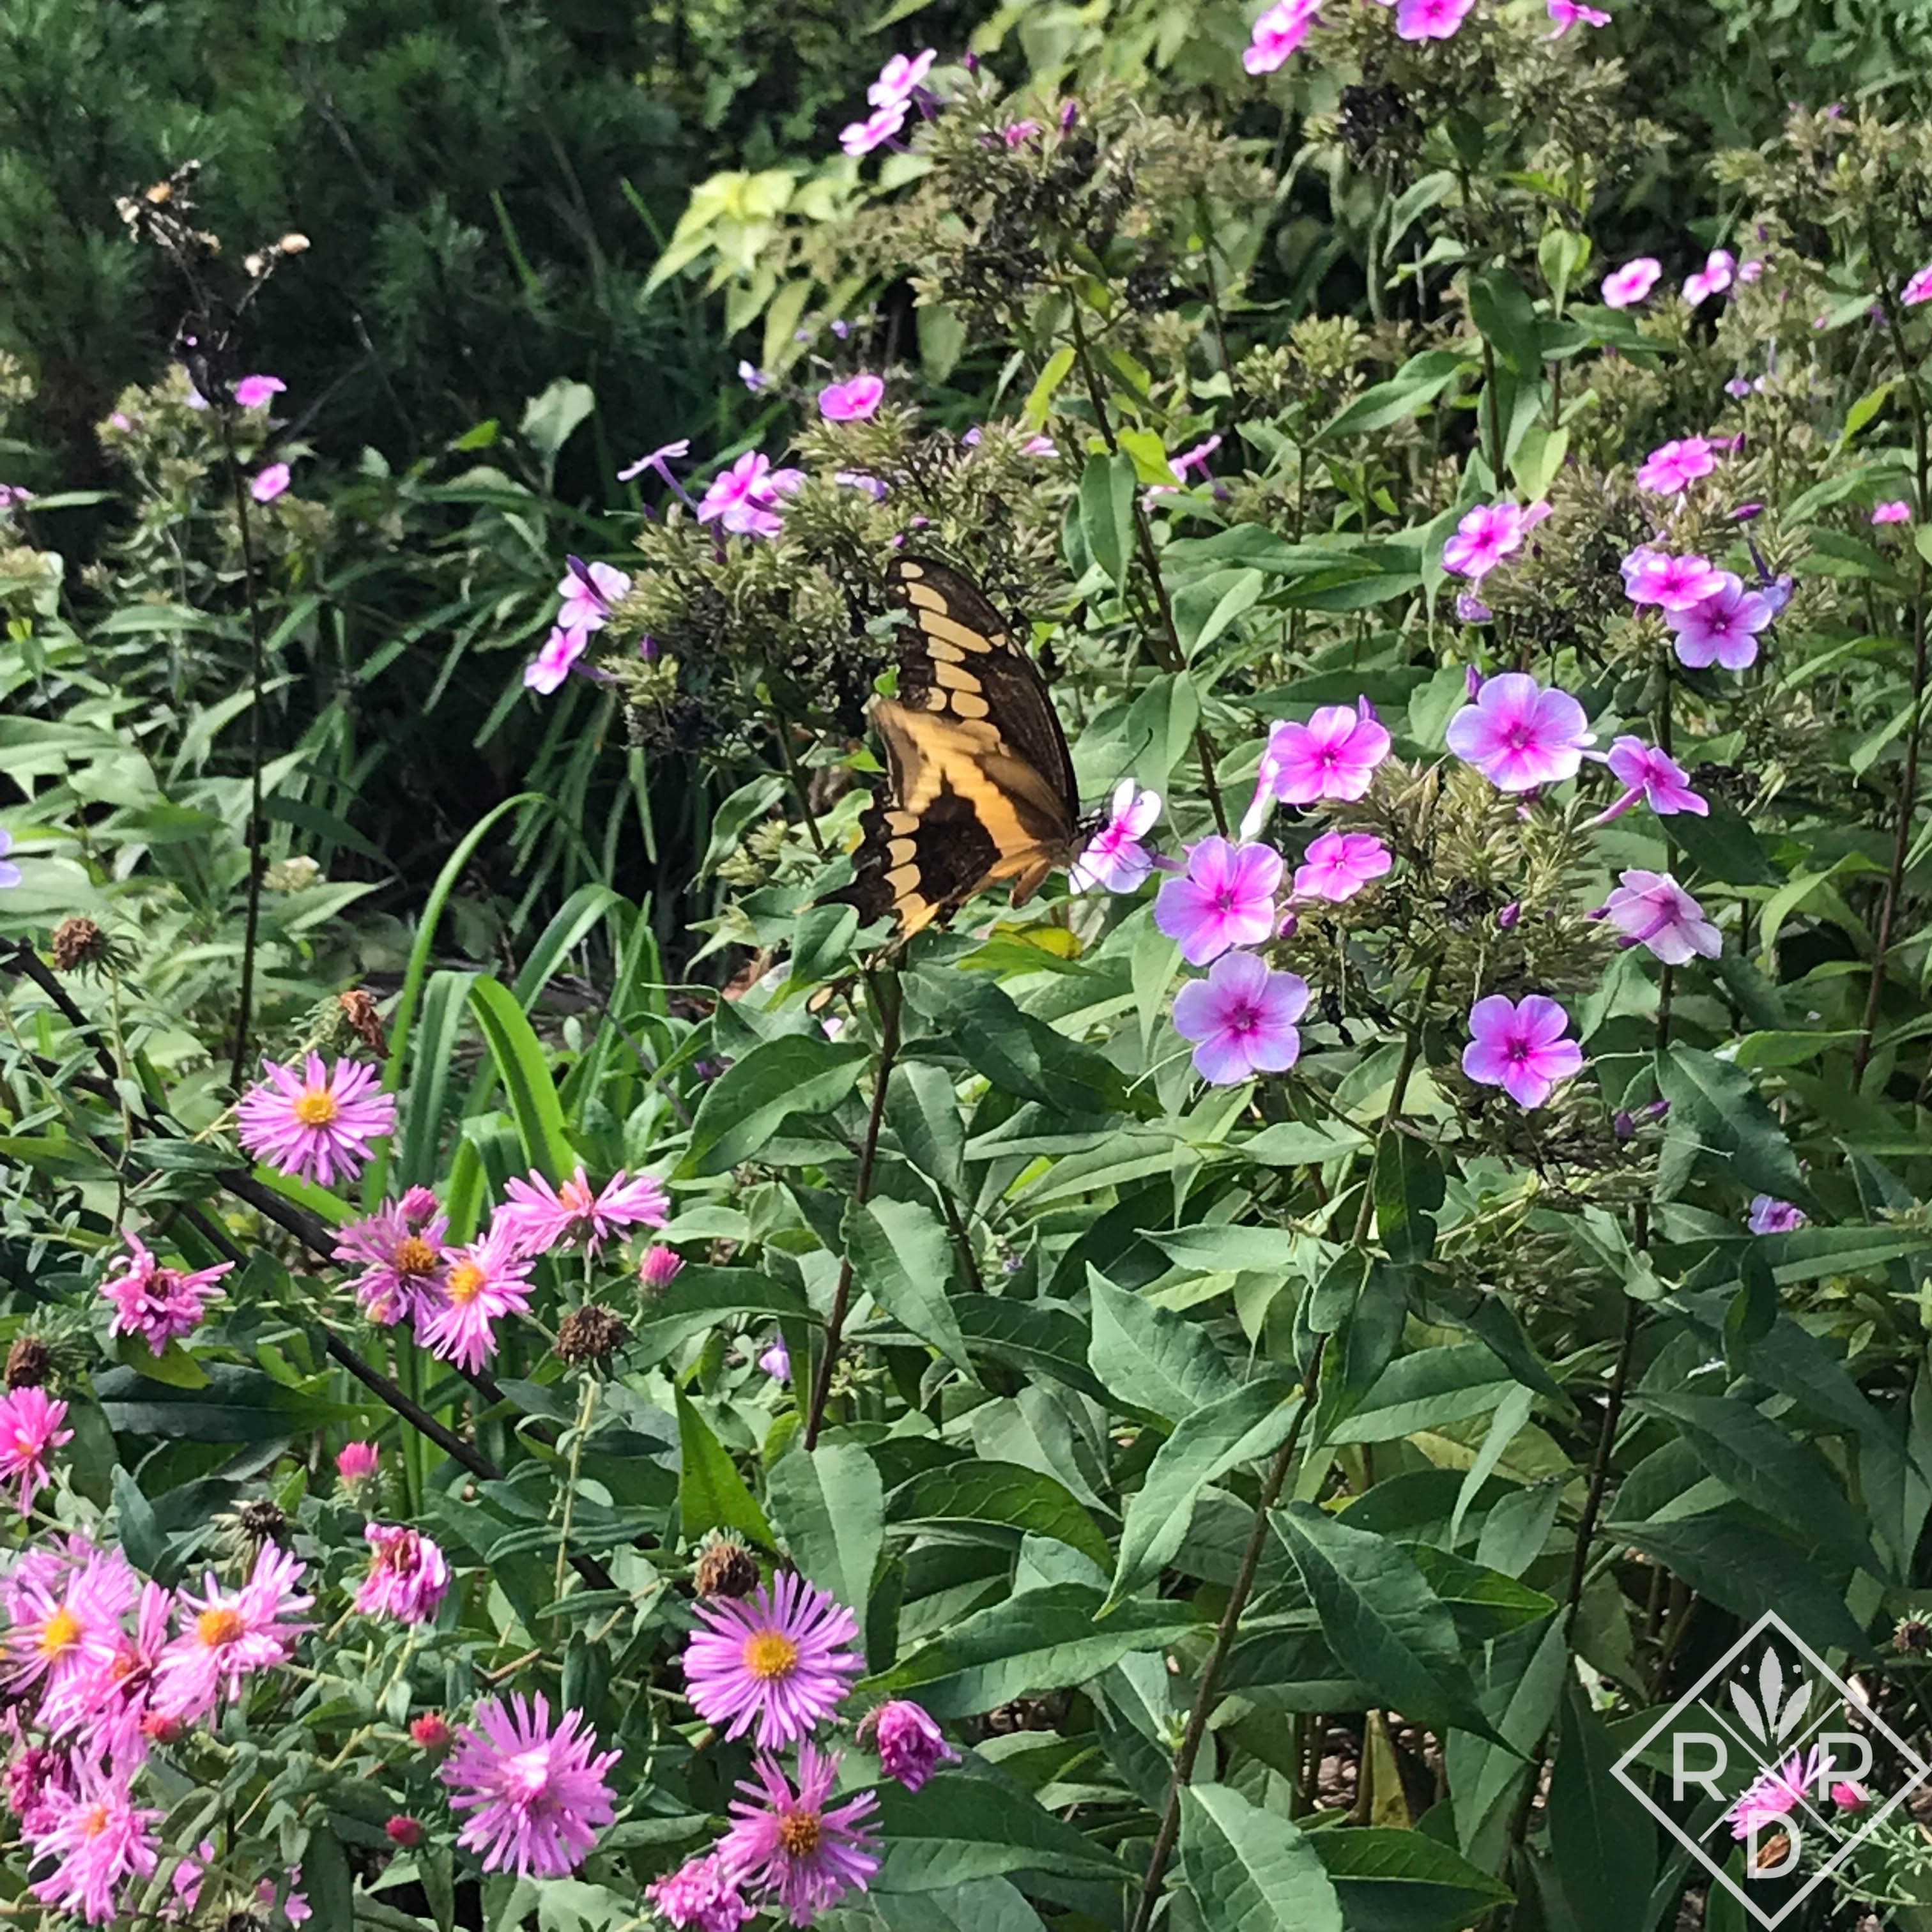 Giant Swallowtail on Phlox paniculata. I really need to cut the plant back, but the butterflies seem to enjoy the remaining blooms so much that I just don't.